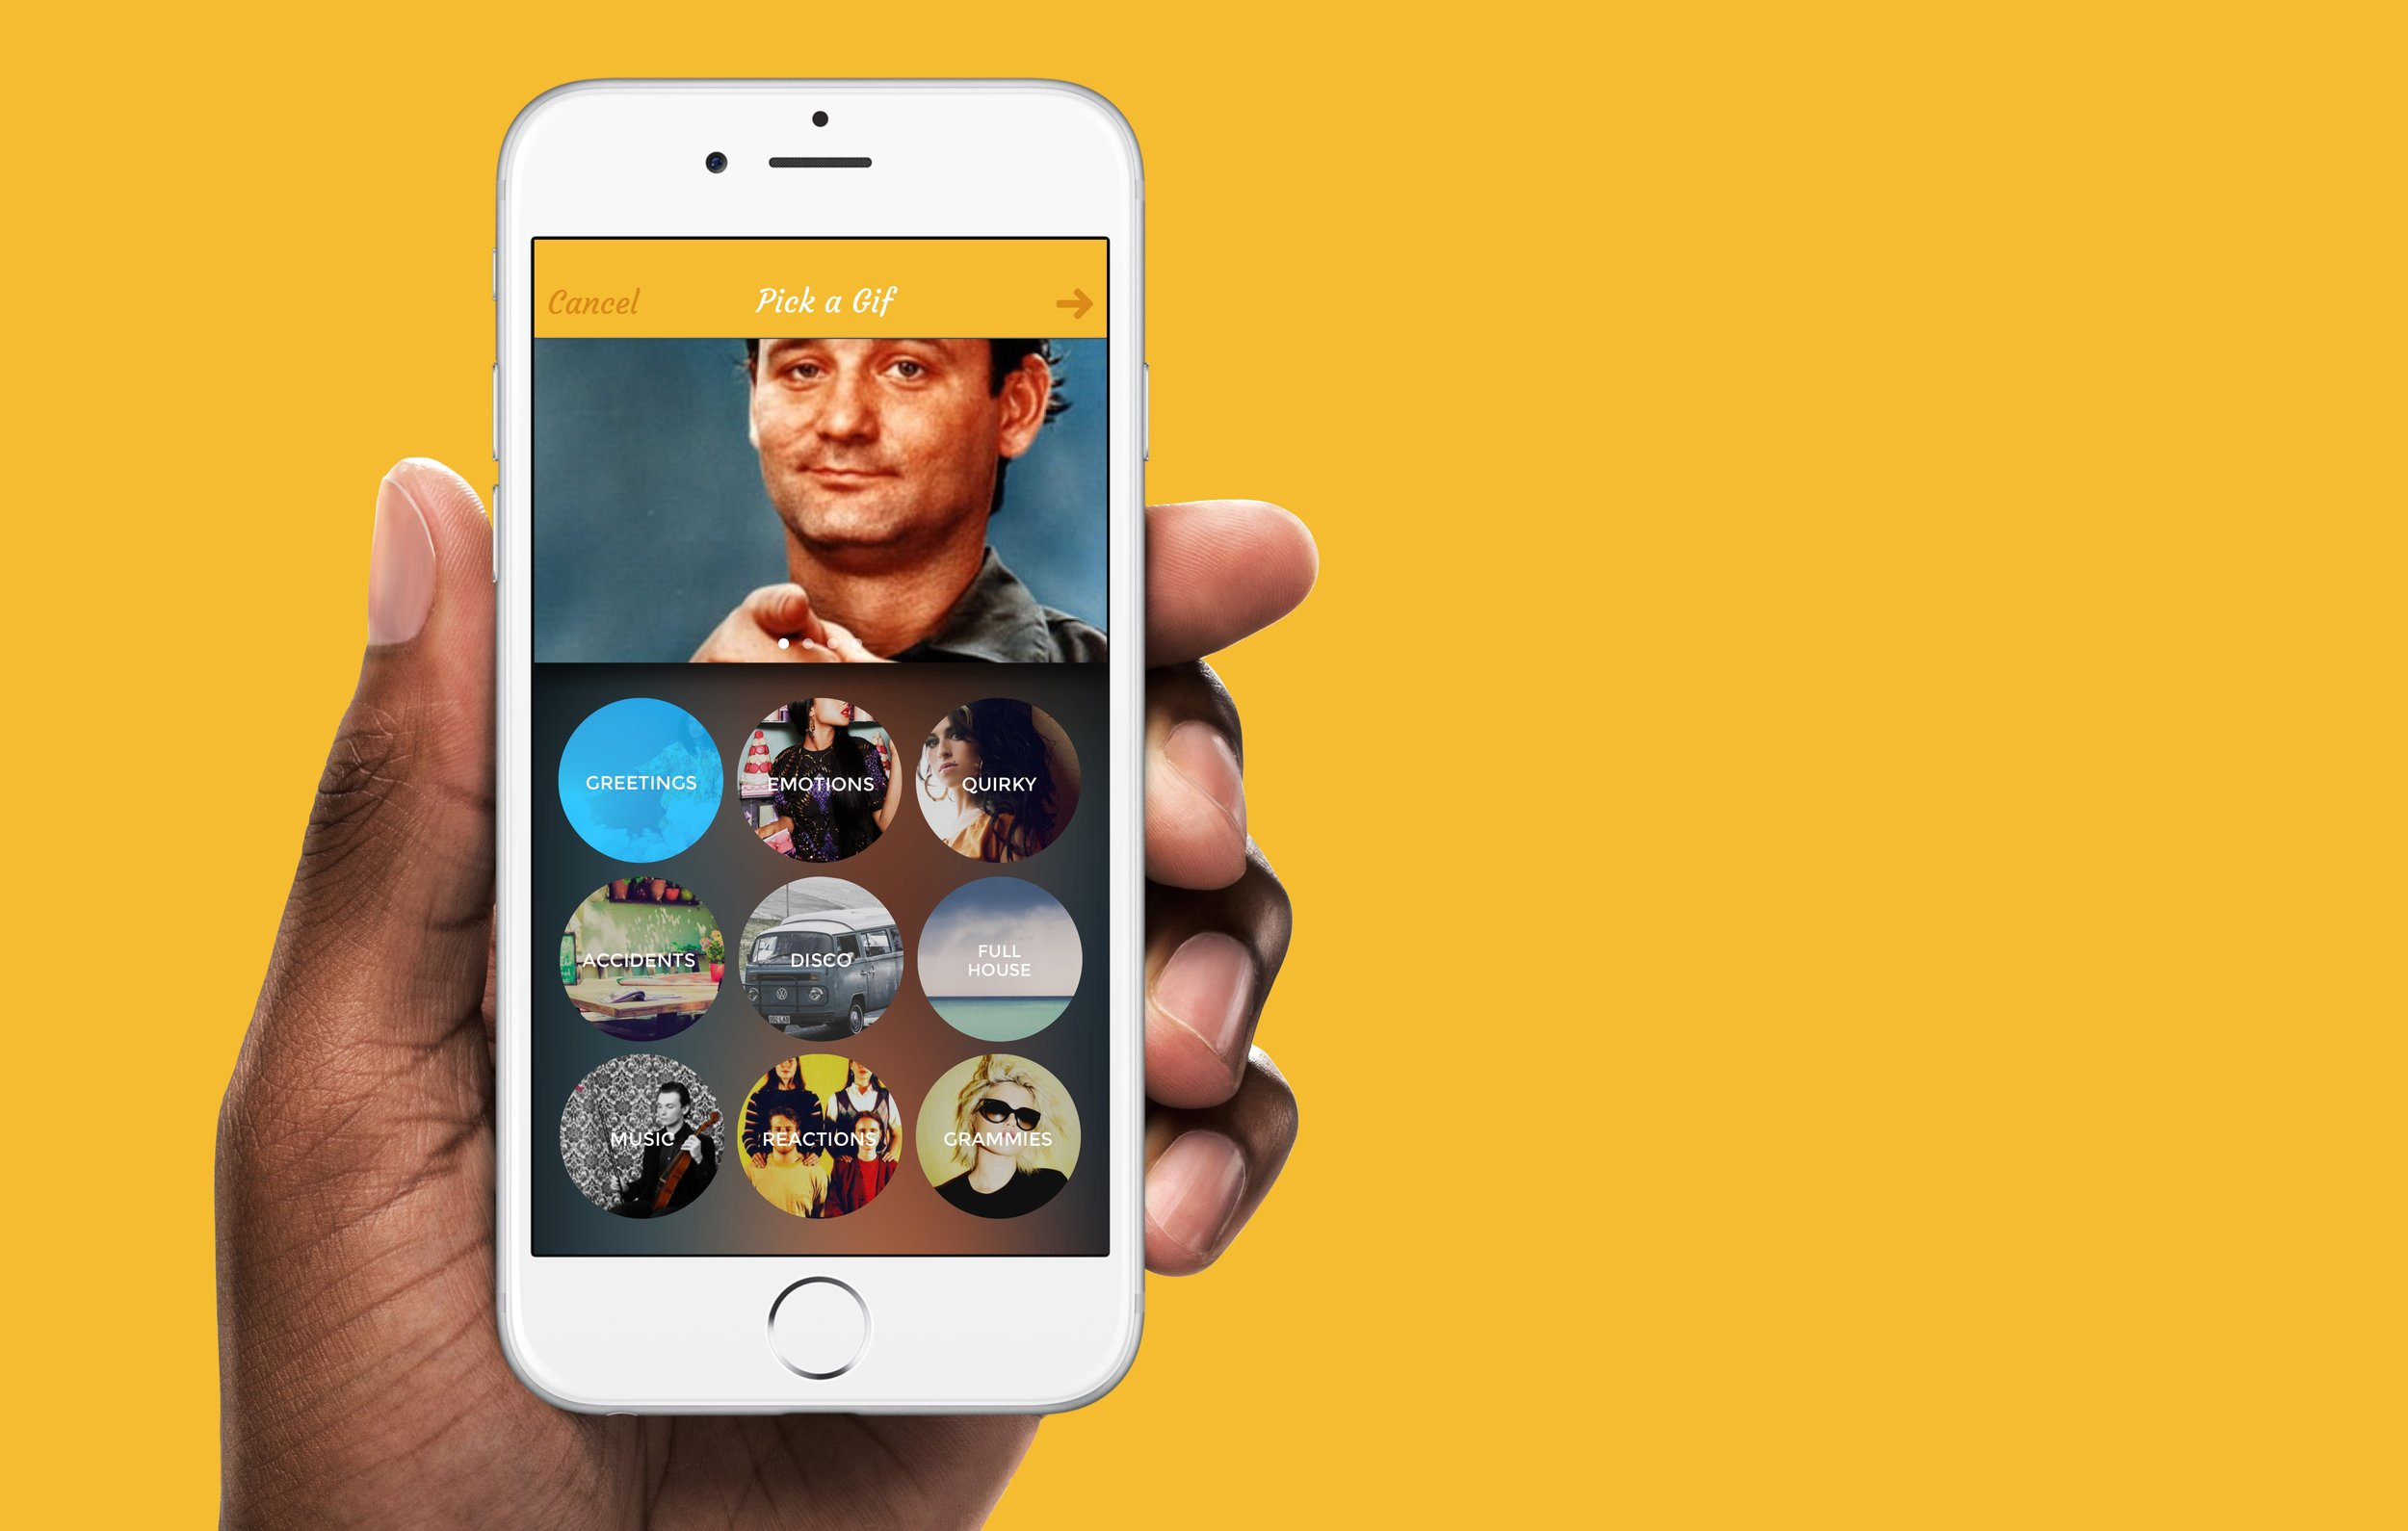 Lively - Lively is a social messaging app based around the best gifs served fresh daily. I worked closely with the Lively team to rapidly develop different concepts and prototype designs. The resulting interface is dynamic to the gif on the screen, using a blurred and tinted version of it as the background.